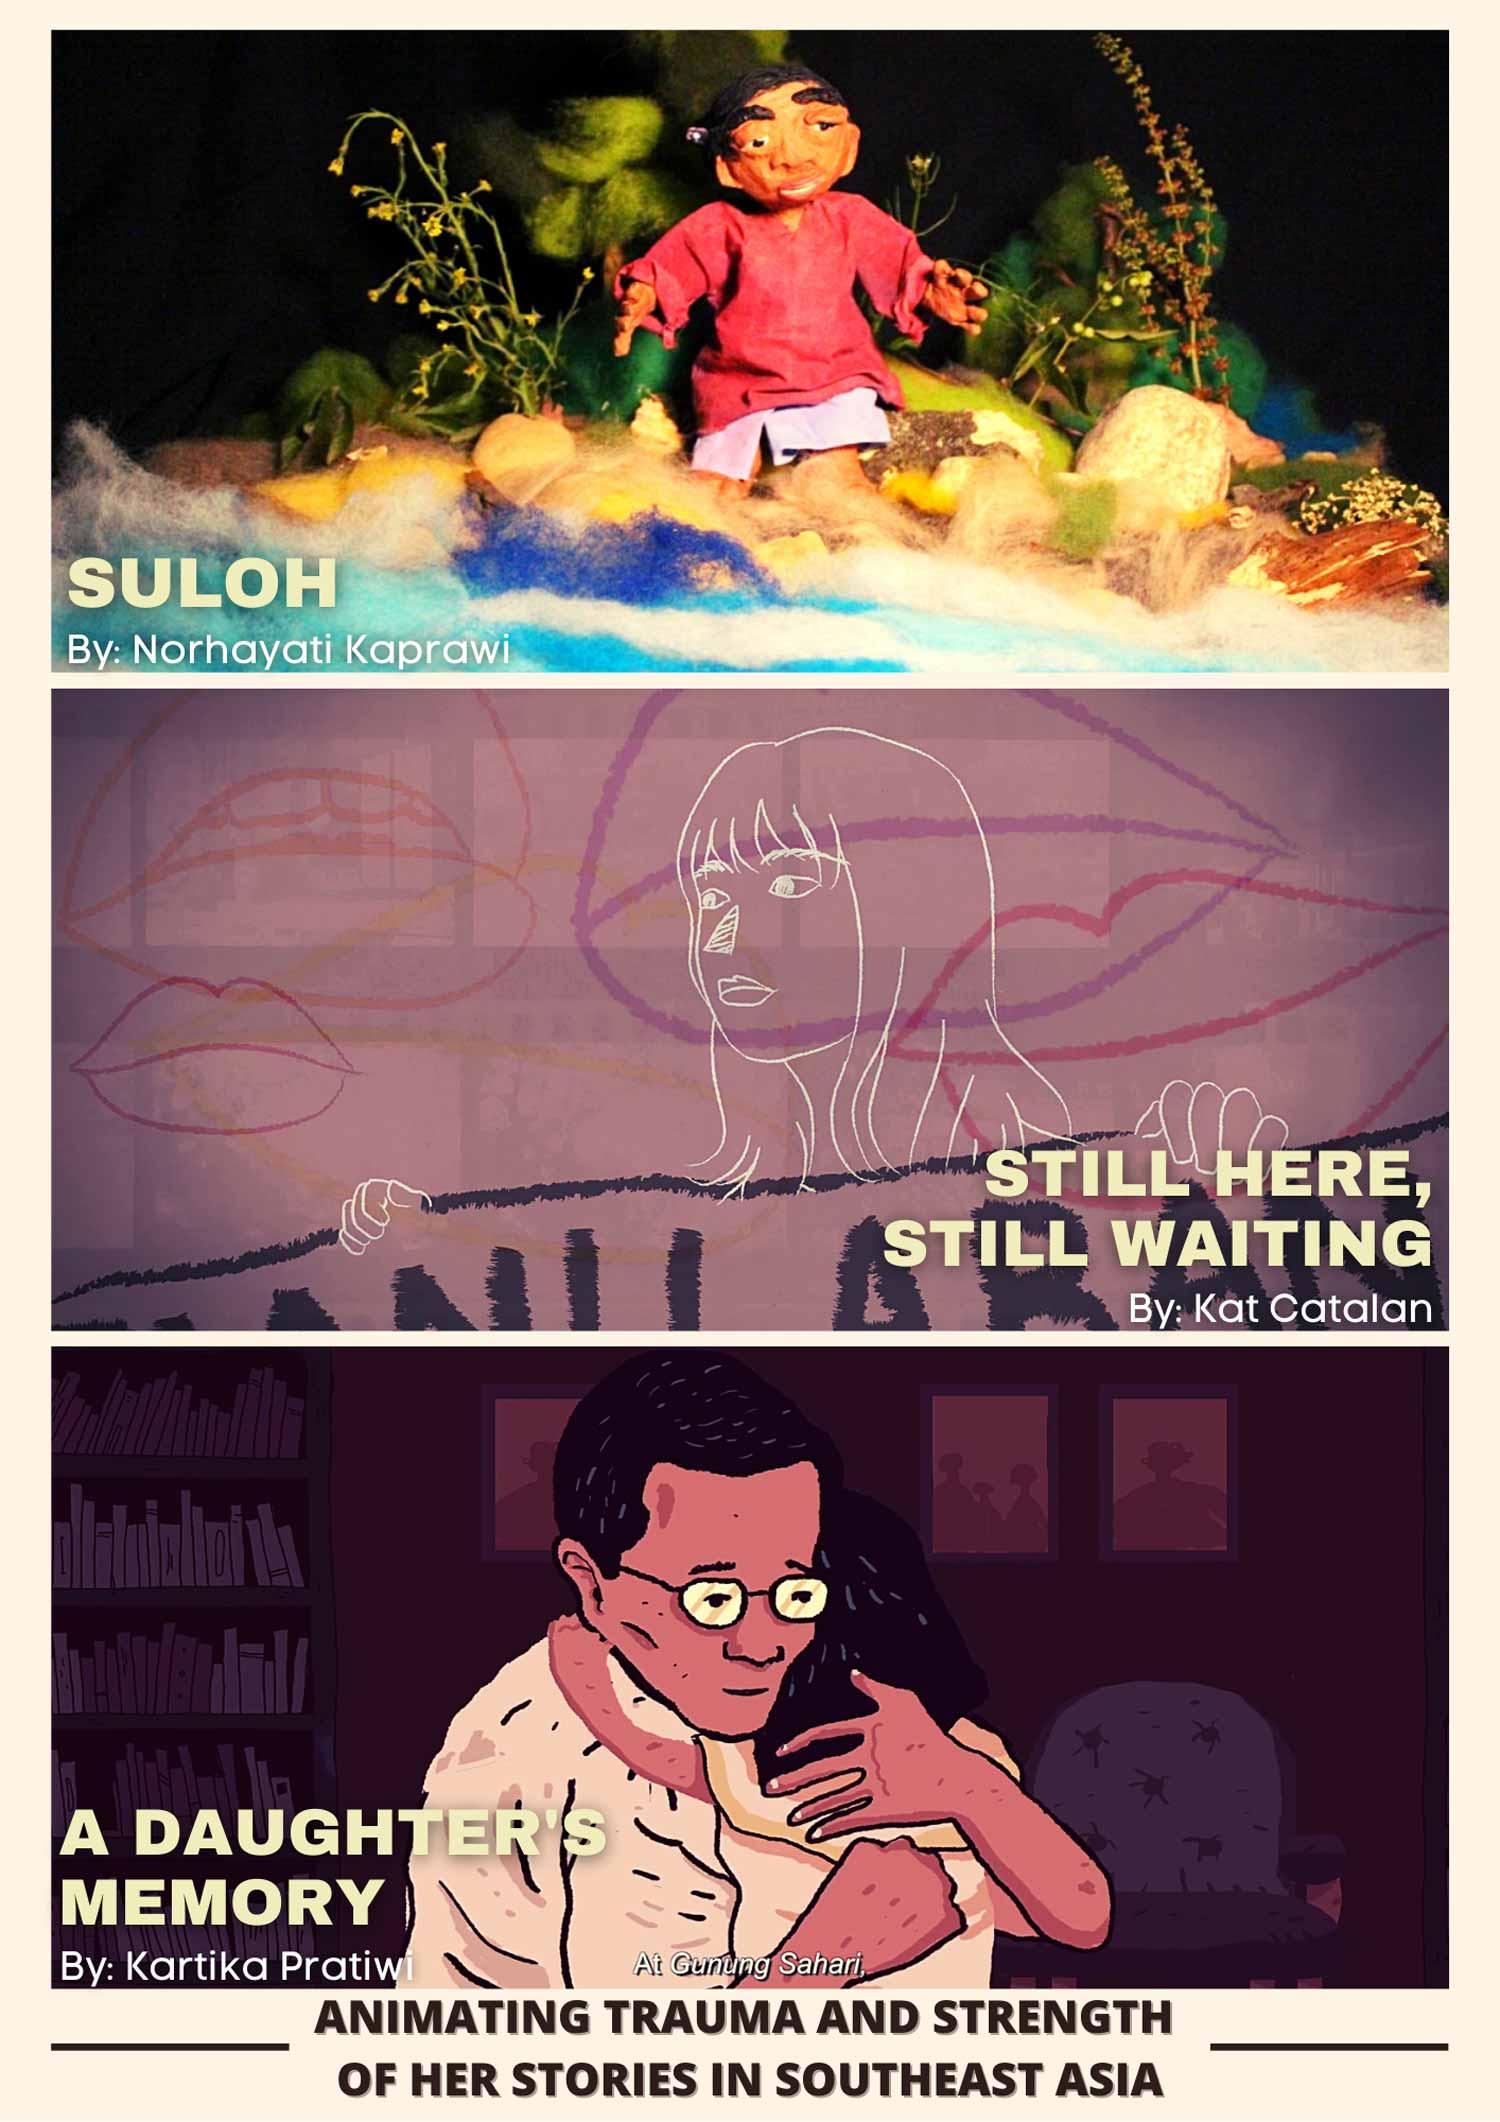 Animating HERstories of trauma and healing in South East Asia - A selection of 3 short animated documentaries followed by a panel discussion with the filmmakers. (FreedomFilmFest 2020)